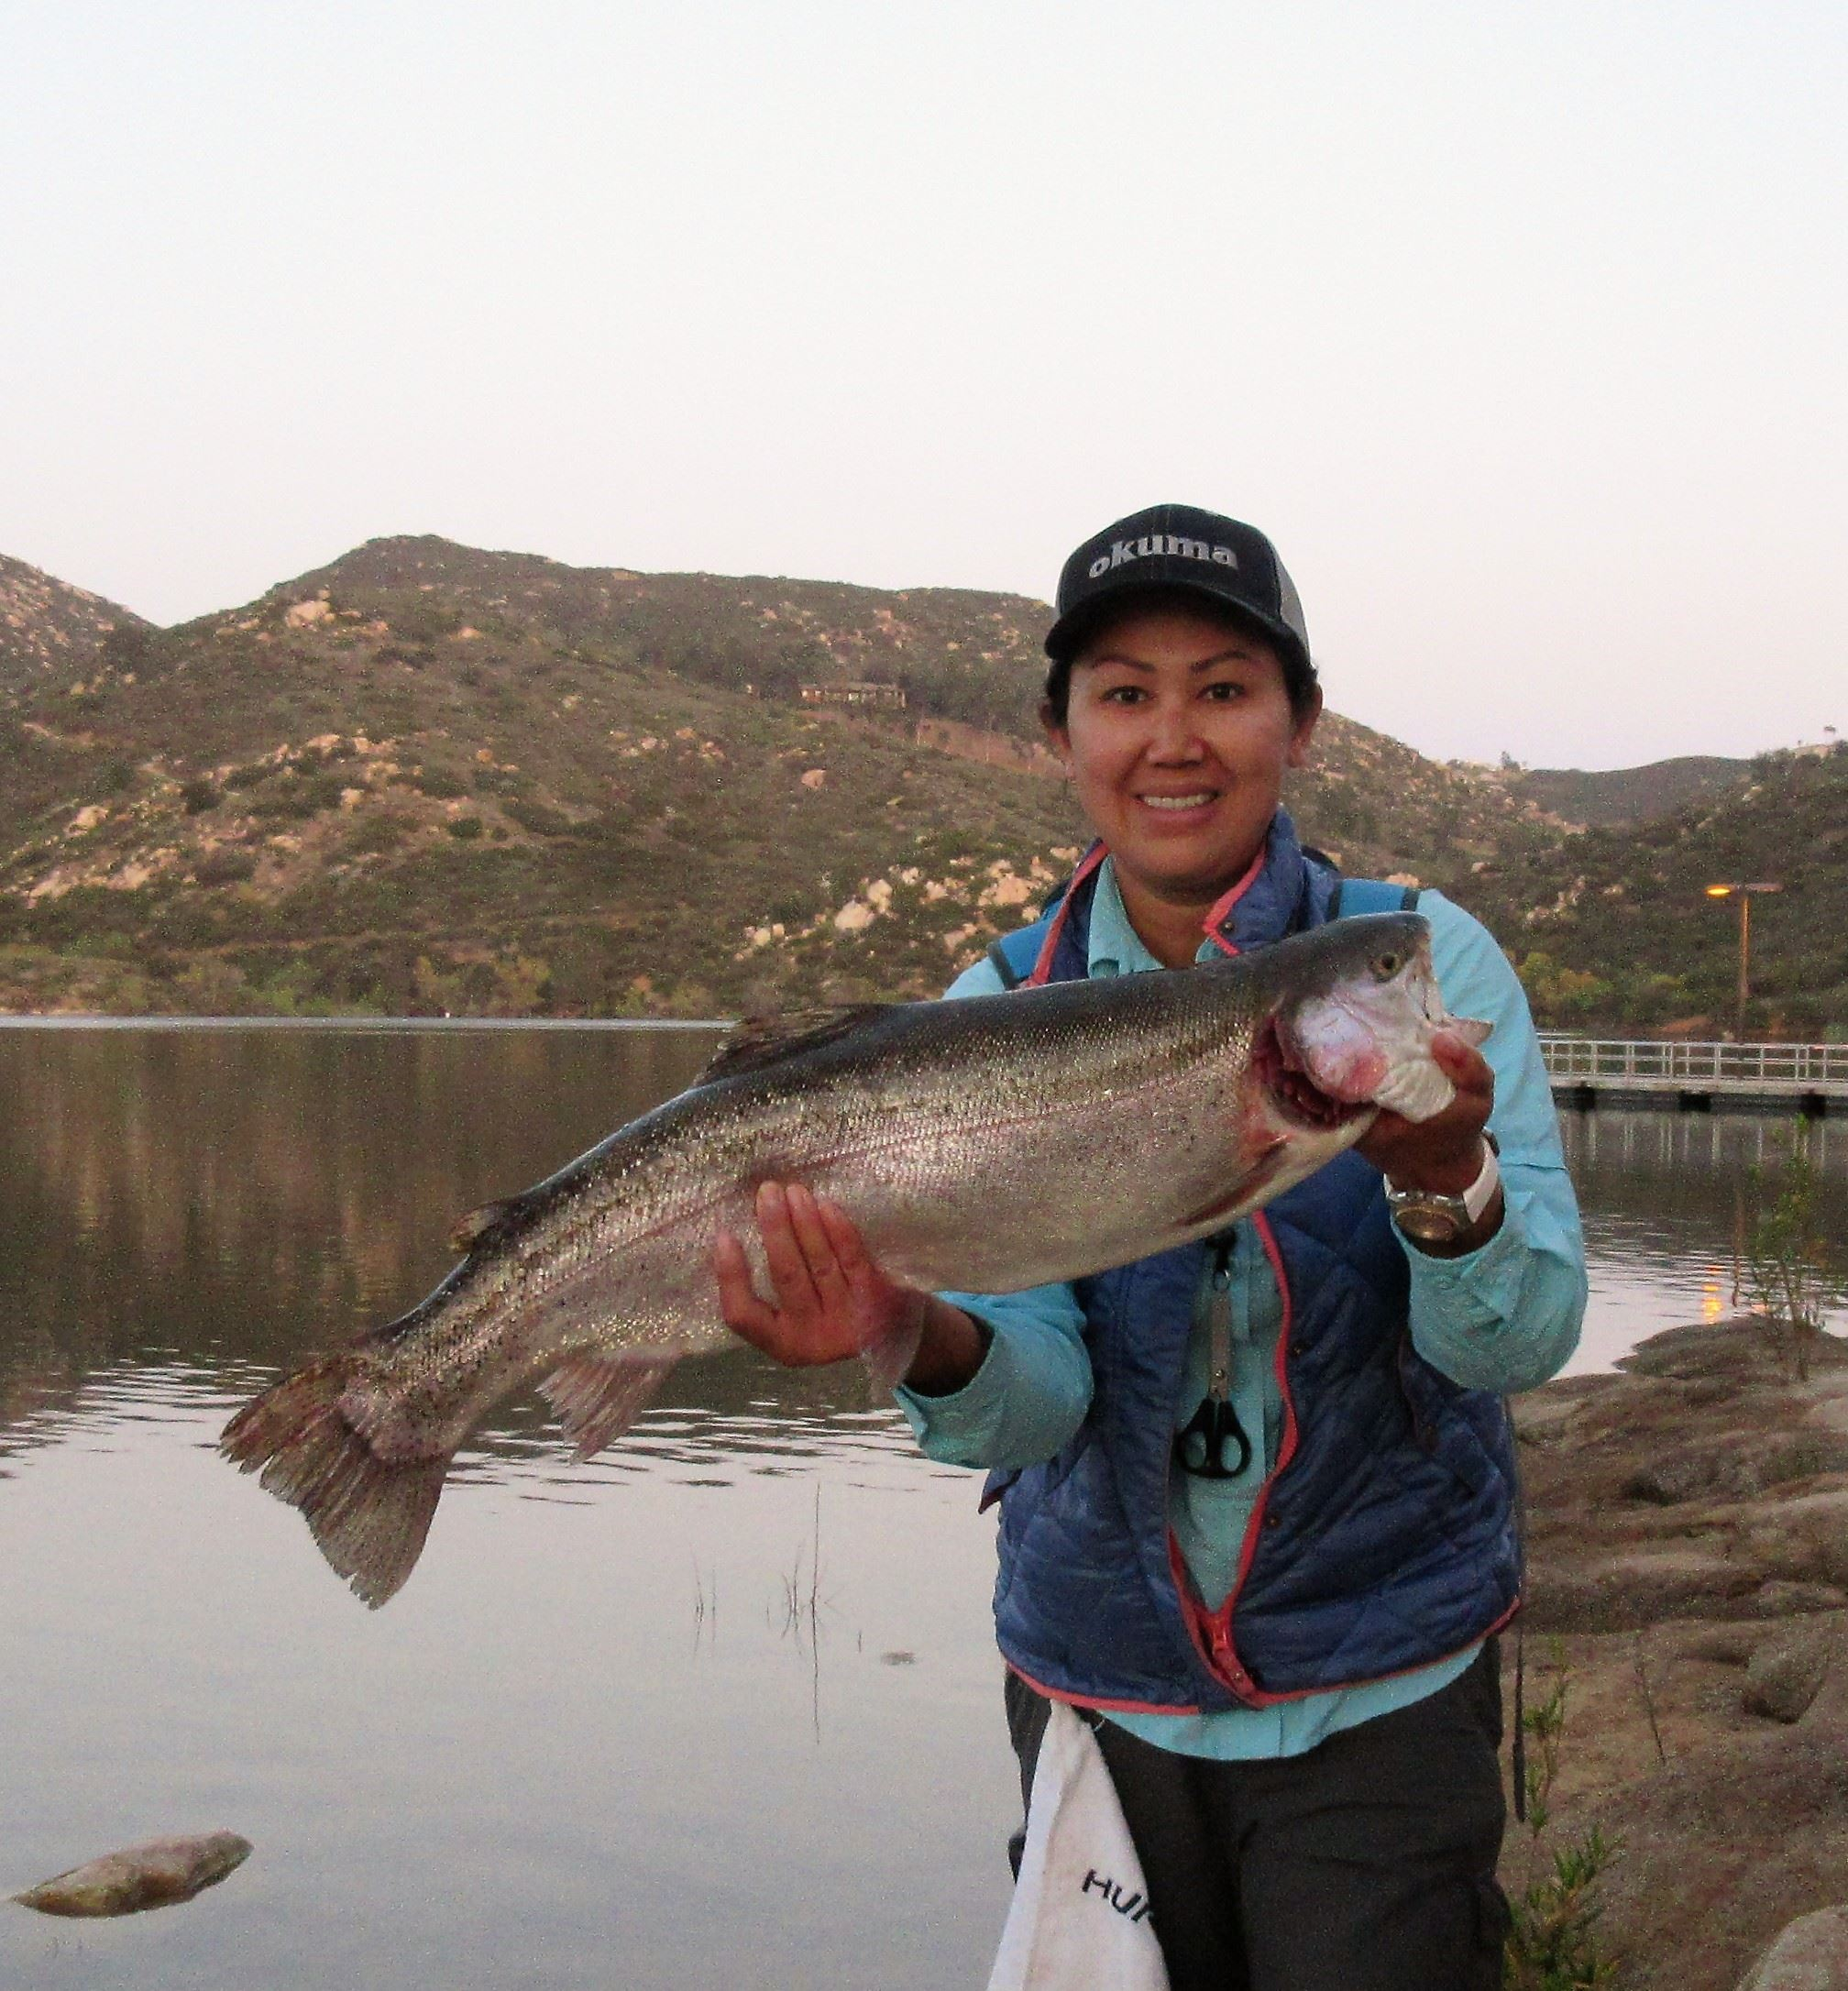 Karen Oswald, 4S Ranch, 18 Apr 2018, 10.96 lb. , 4 trout, 1 Cat, Gold Kastmaster, North of Fishing P